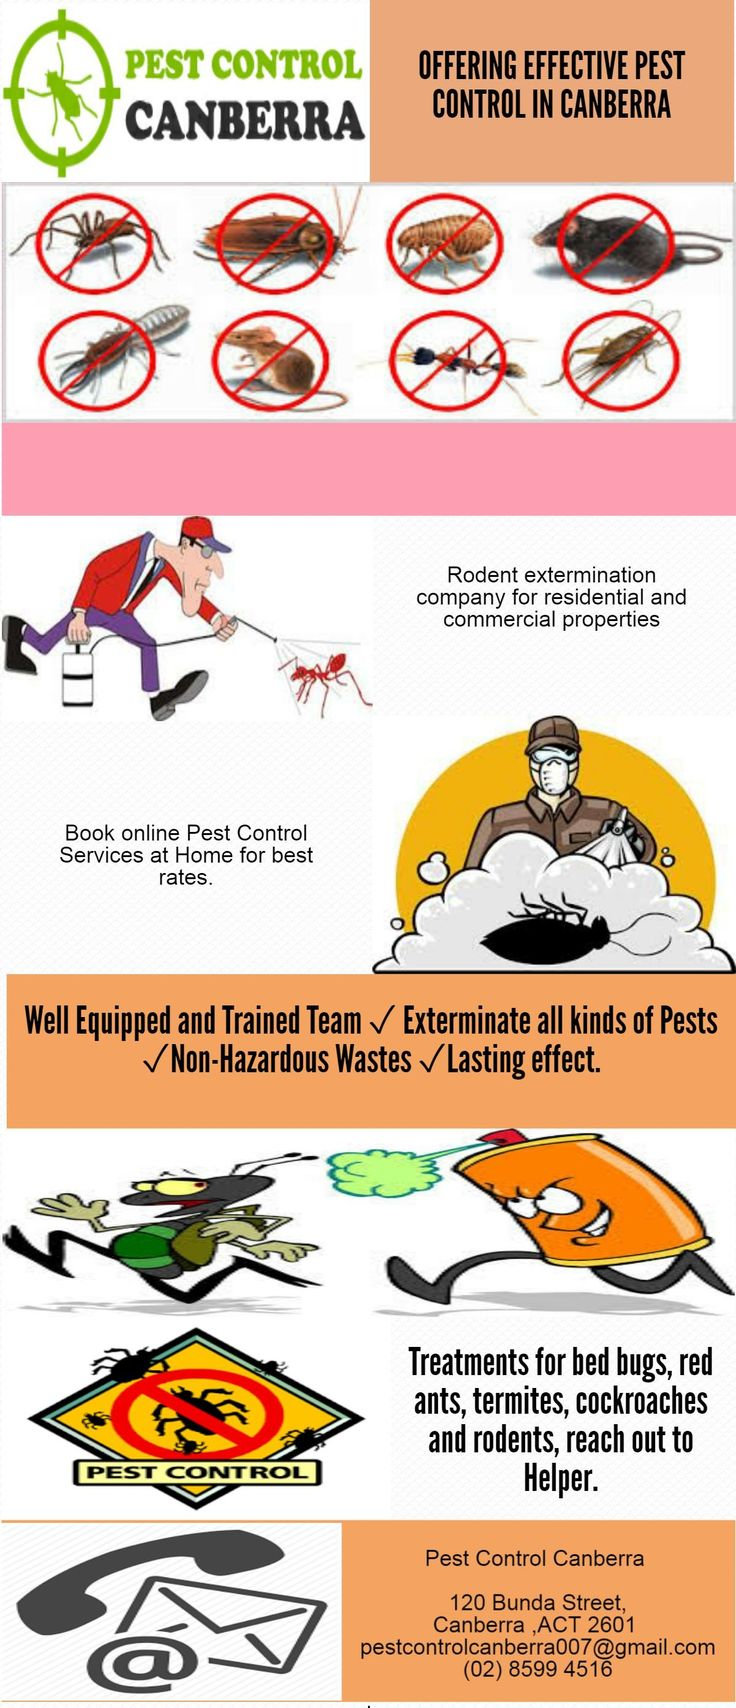 Best Pest Control in Canberra is considered as one of the best places to monitor the virus. Pest is the bugs that decimate your home, and business moreover affects your wellbeing. To know more visit us at 120 Bunda Street, Canberra, Australian Capital Territory 2601 or Call us at 0261300747.